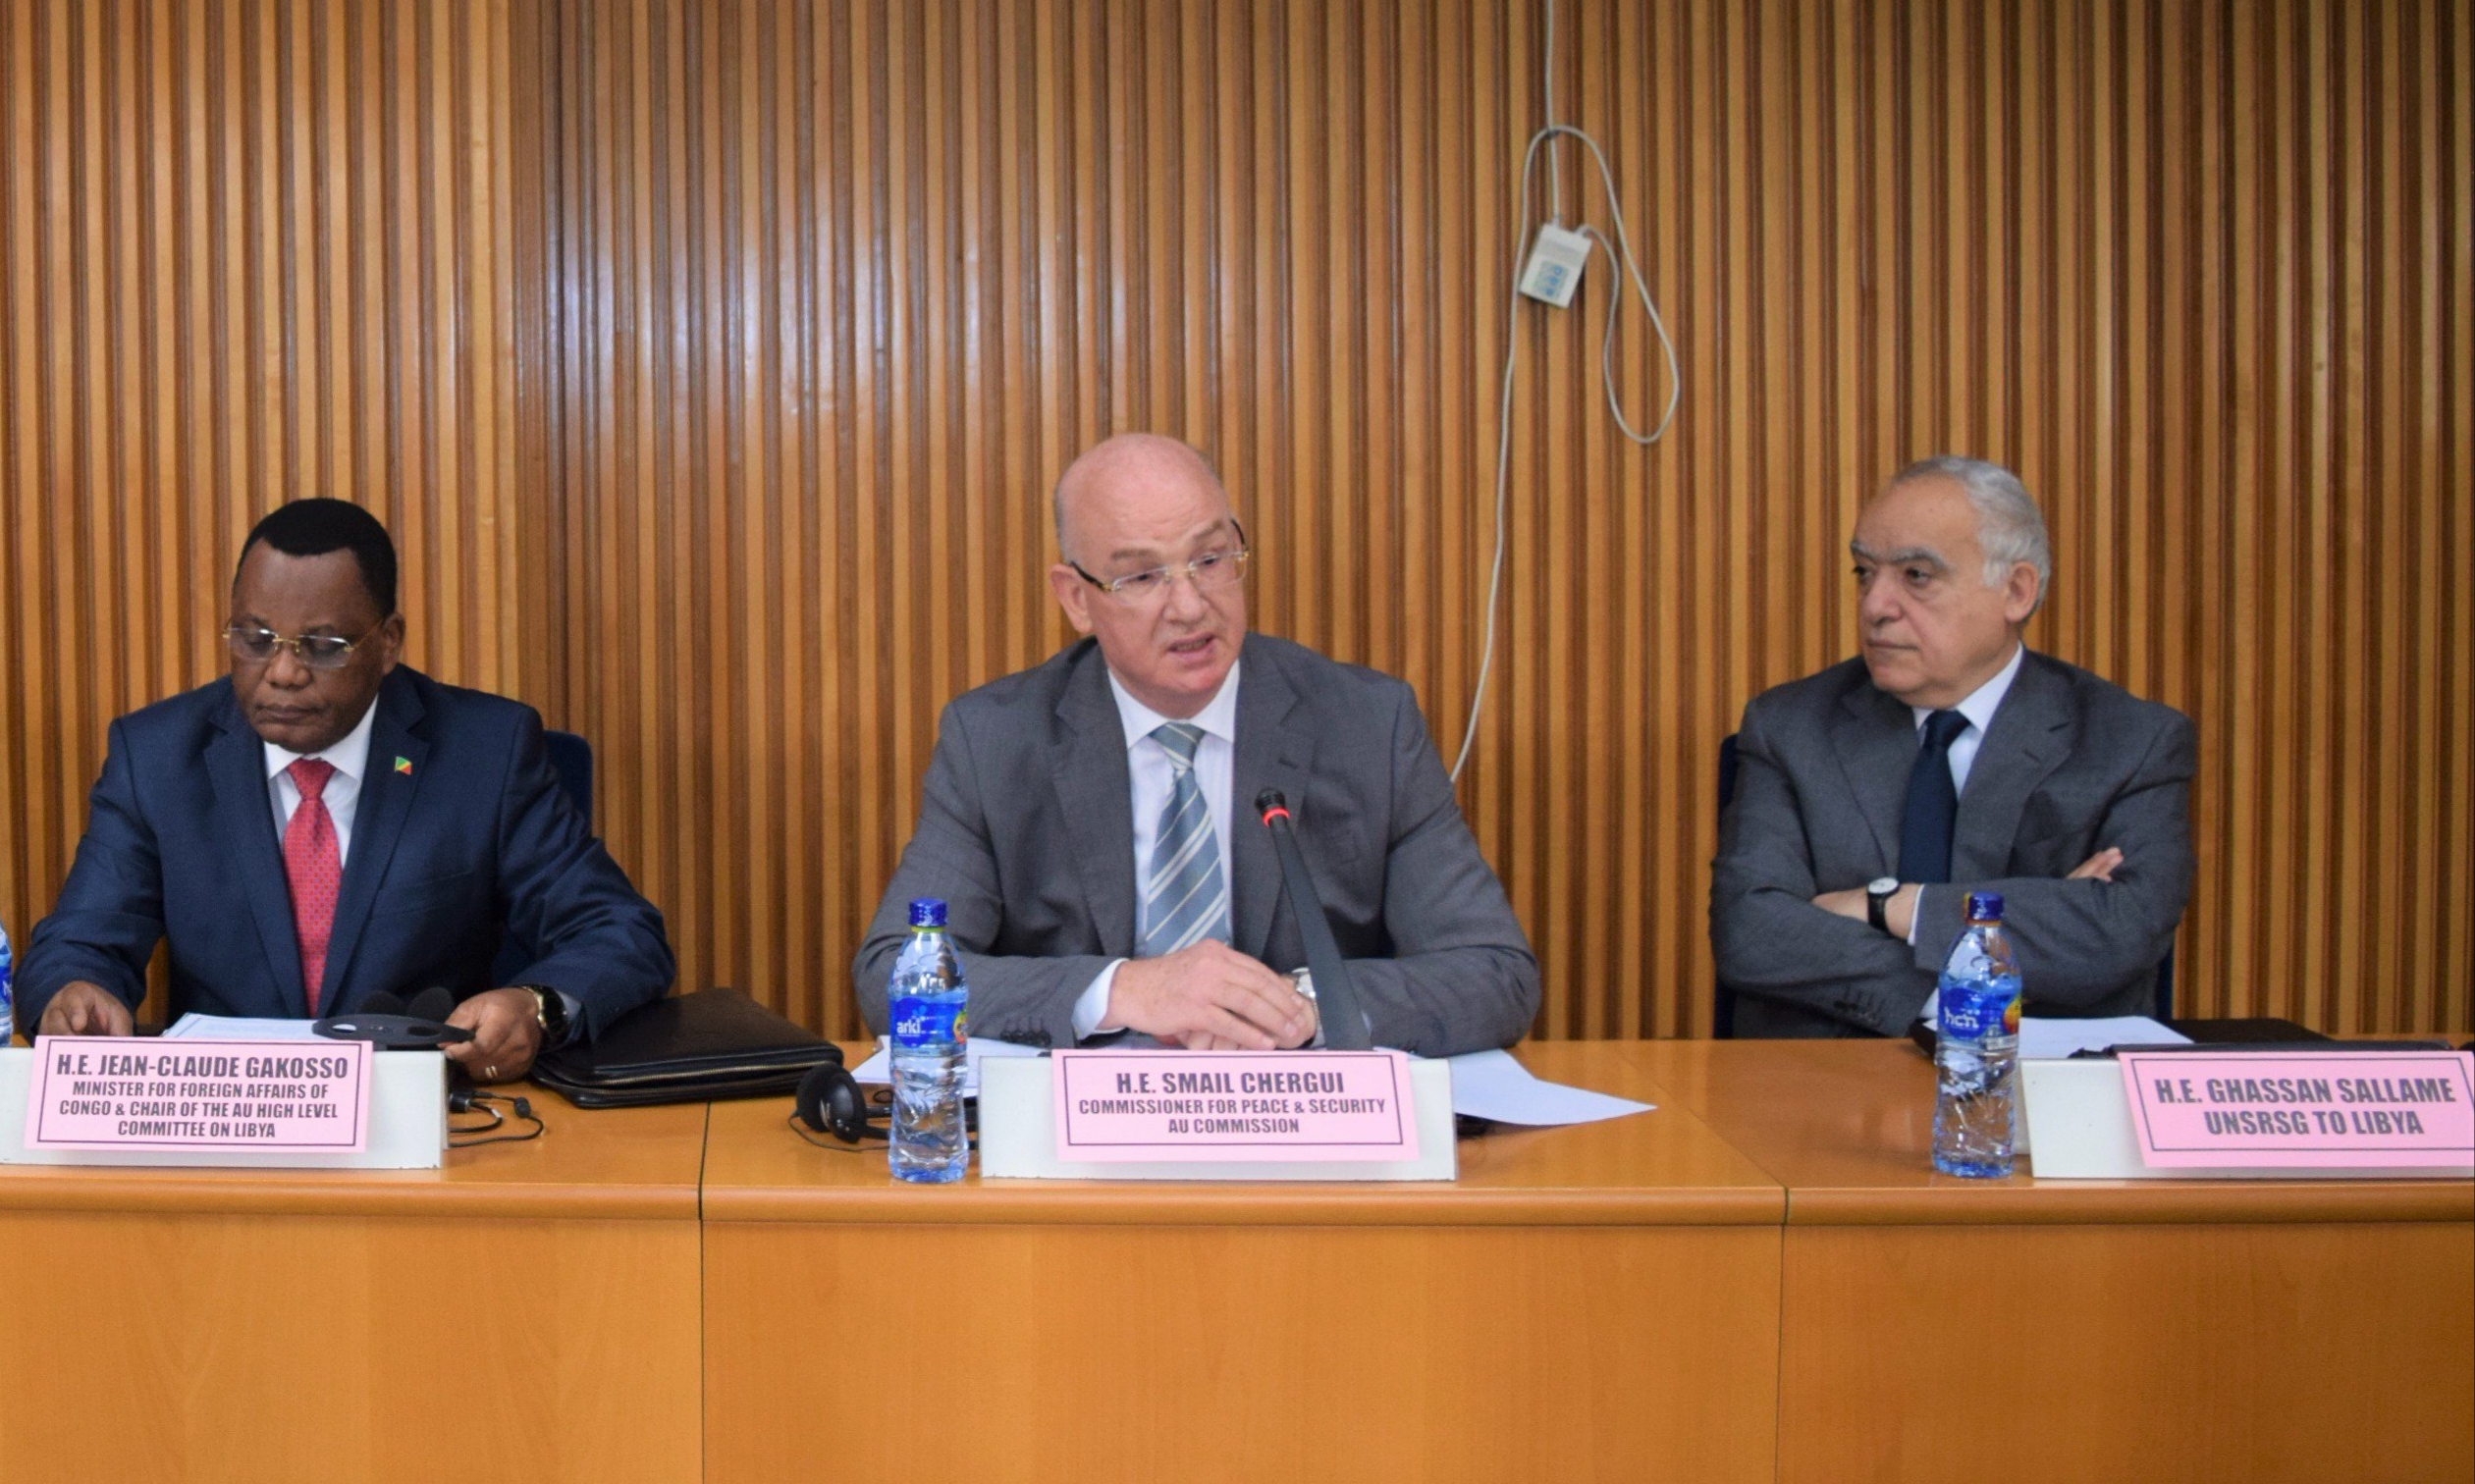 Closing remarks by Ambassador Smail Chergui, Commissioner for Peace and Security, on the occasion of the fifth meeting of the AU High Level Committee on Libya